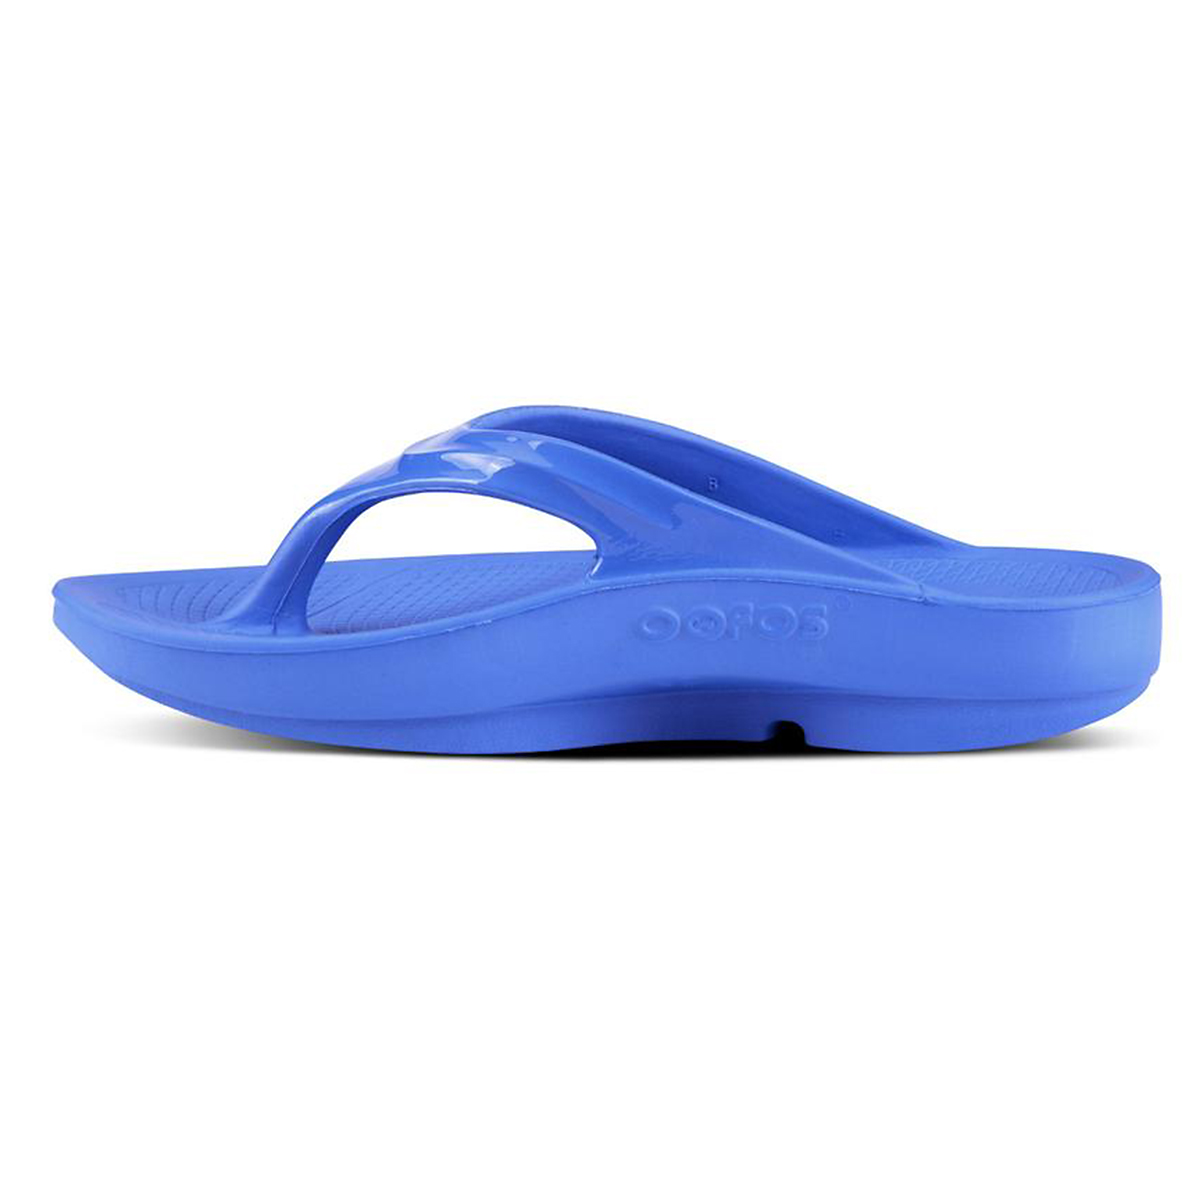 Women's Oofos OOlala Thong Recovery Sandal - Color: Jewel - Size: 6 - Width: Regular, Jewel, large, image 2